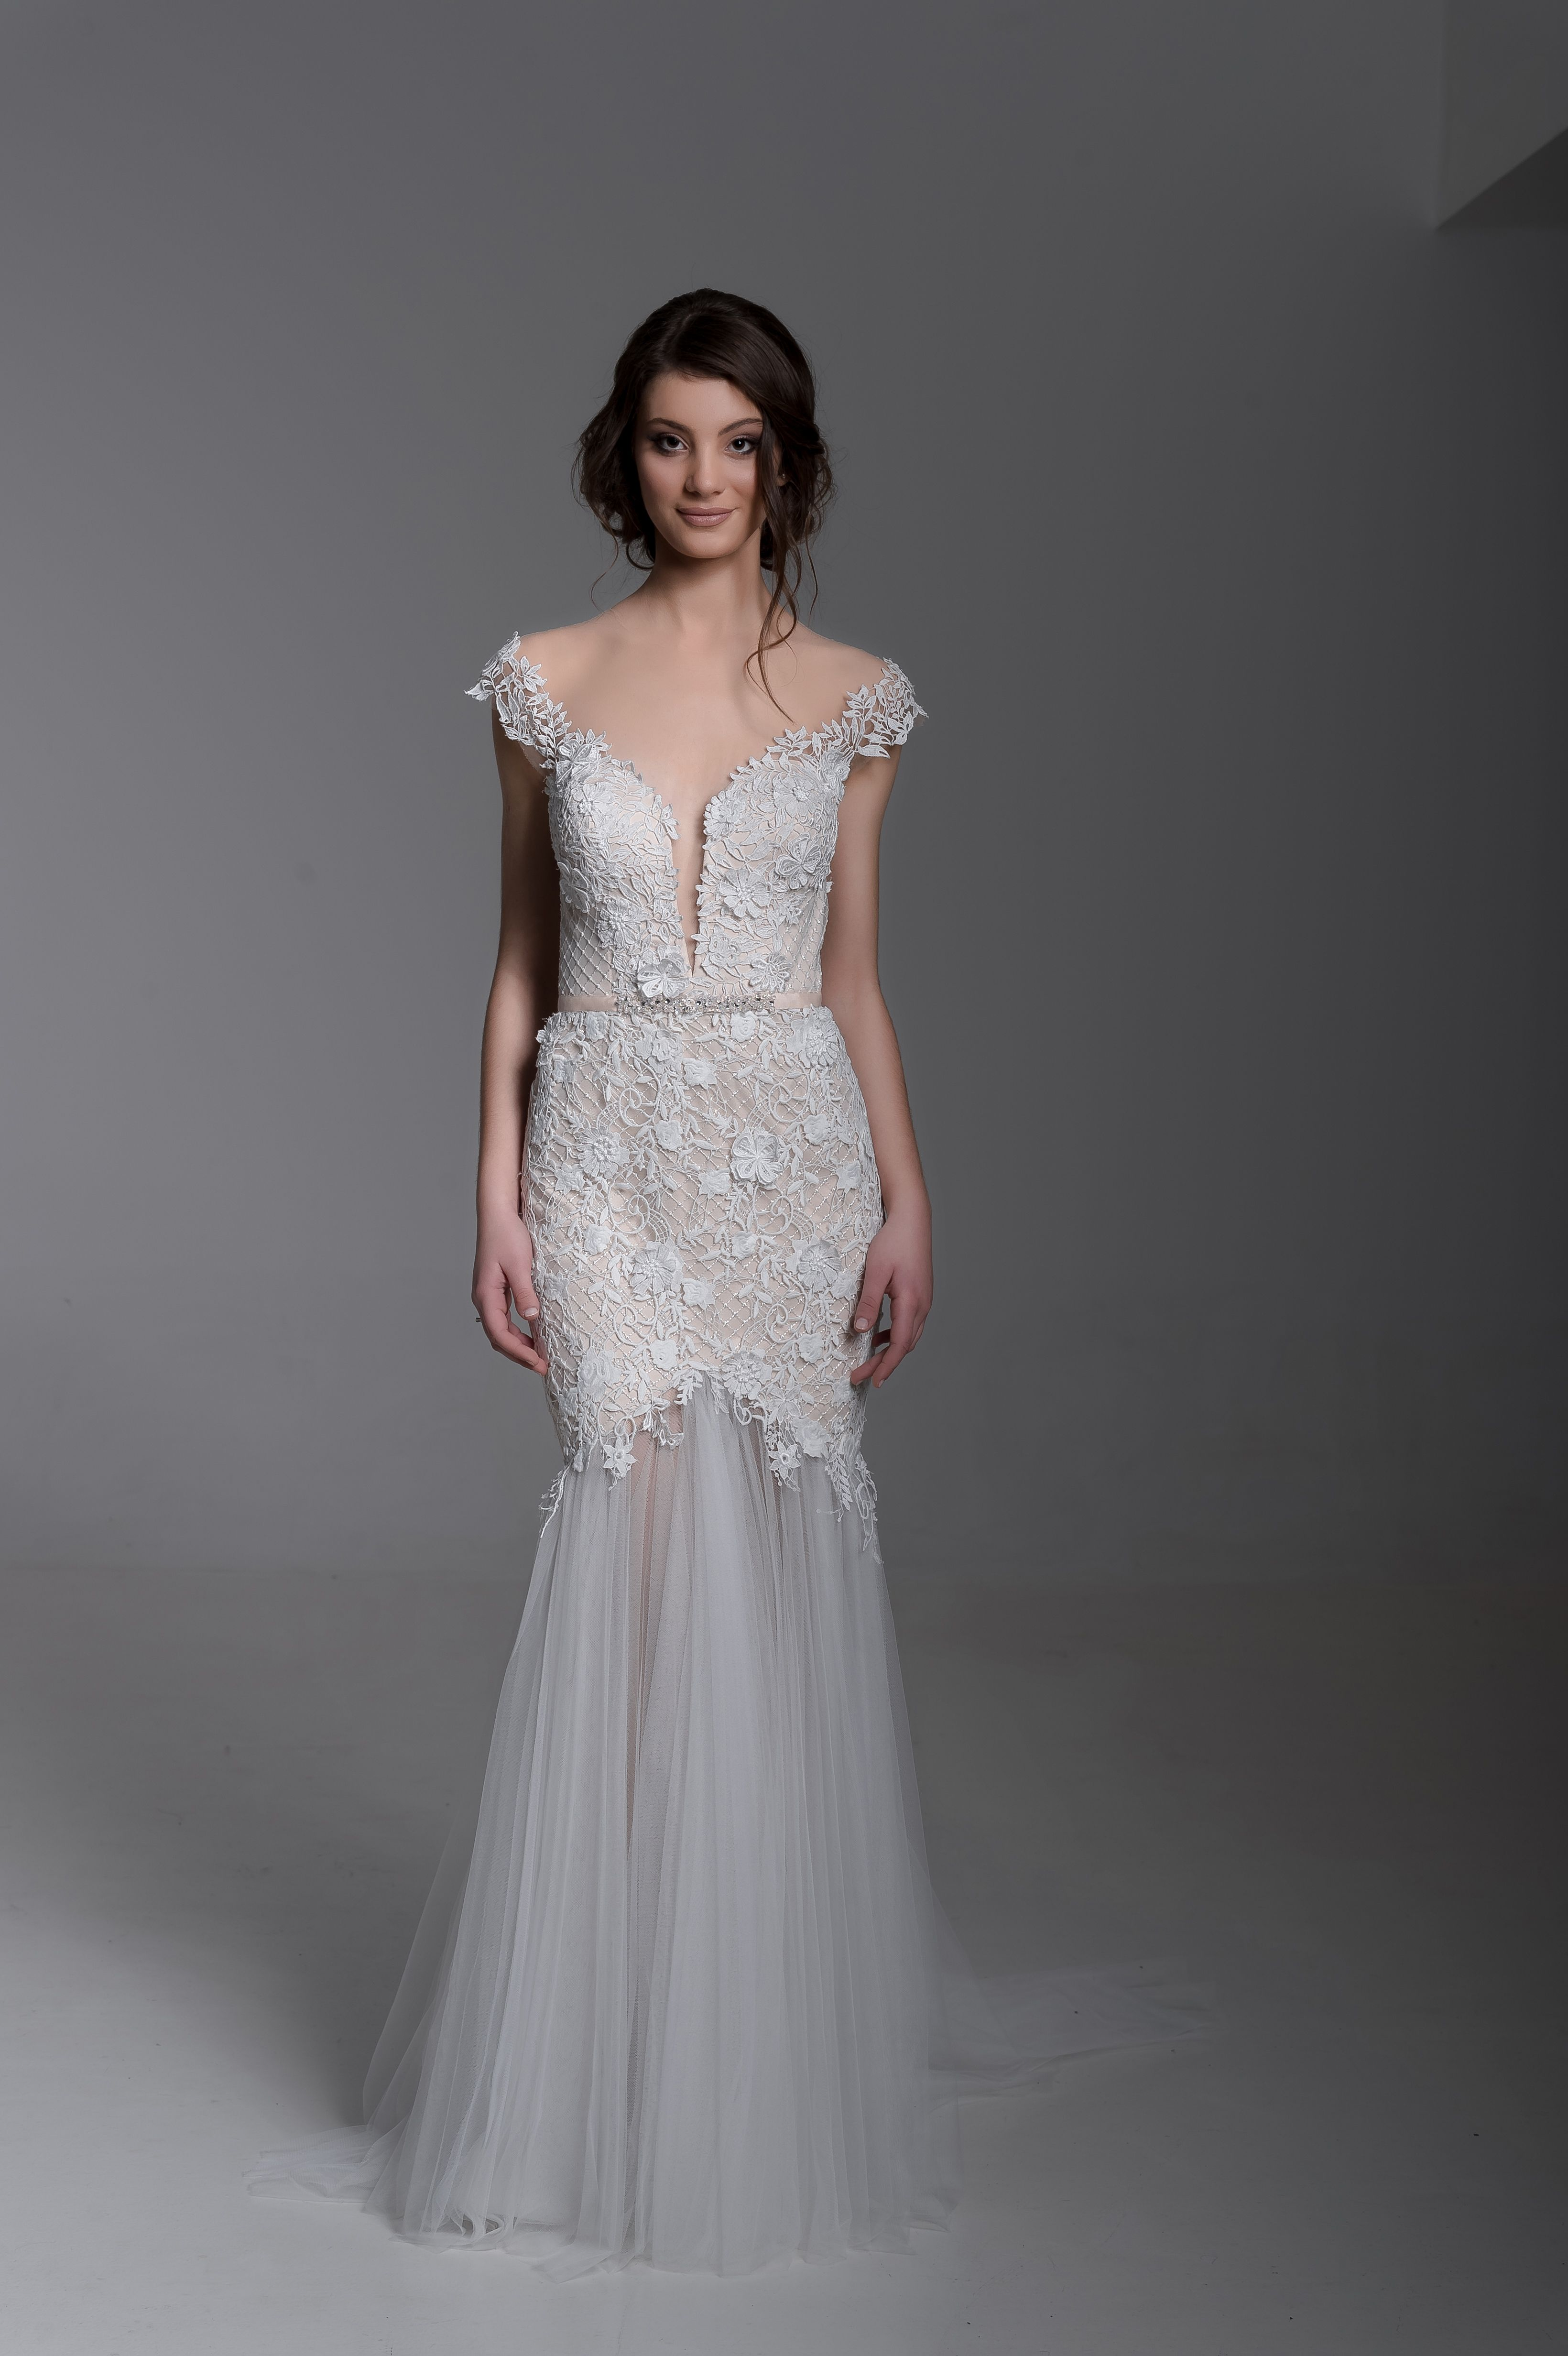 Wedding dress noel collection athens greece lace vintage